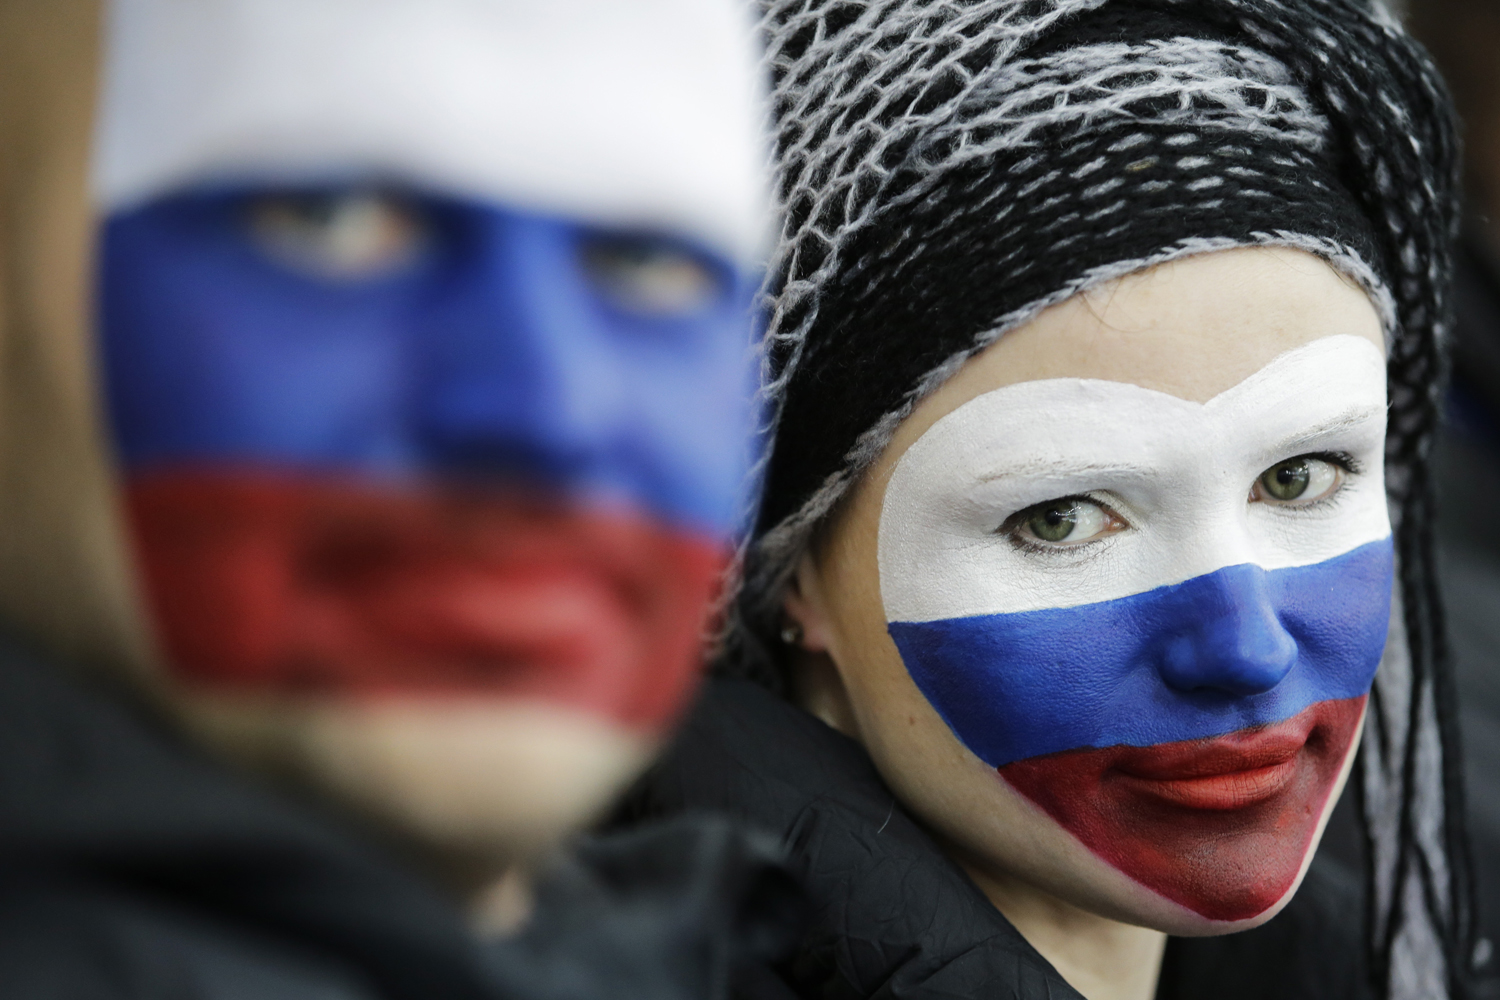 Russian skating fans, faces painted with the colors of their national flag, wait for the start of the women's 1,500-meter speedskating race at the Adler Arena Skating Center during the 2014 Winter Olympics, Sunday, Feb. 16, 2014, in Sochi, Russia.